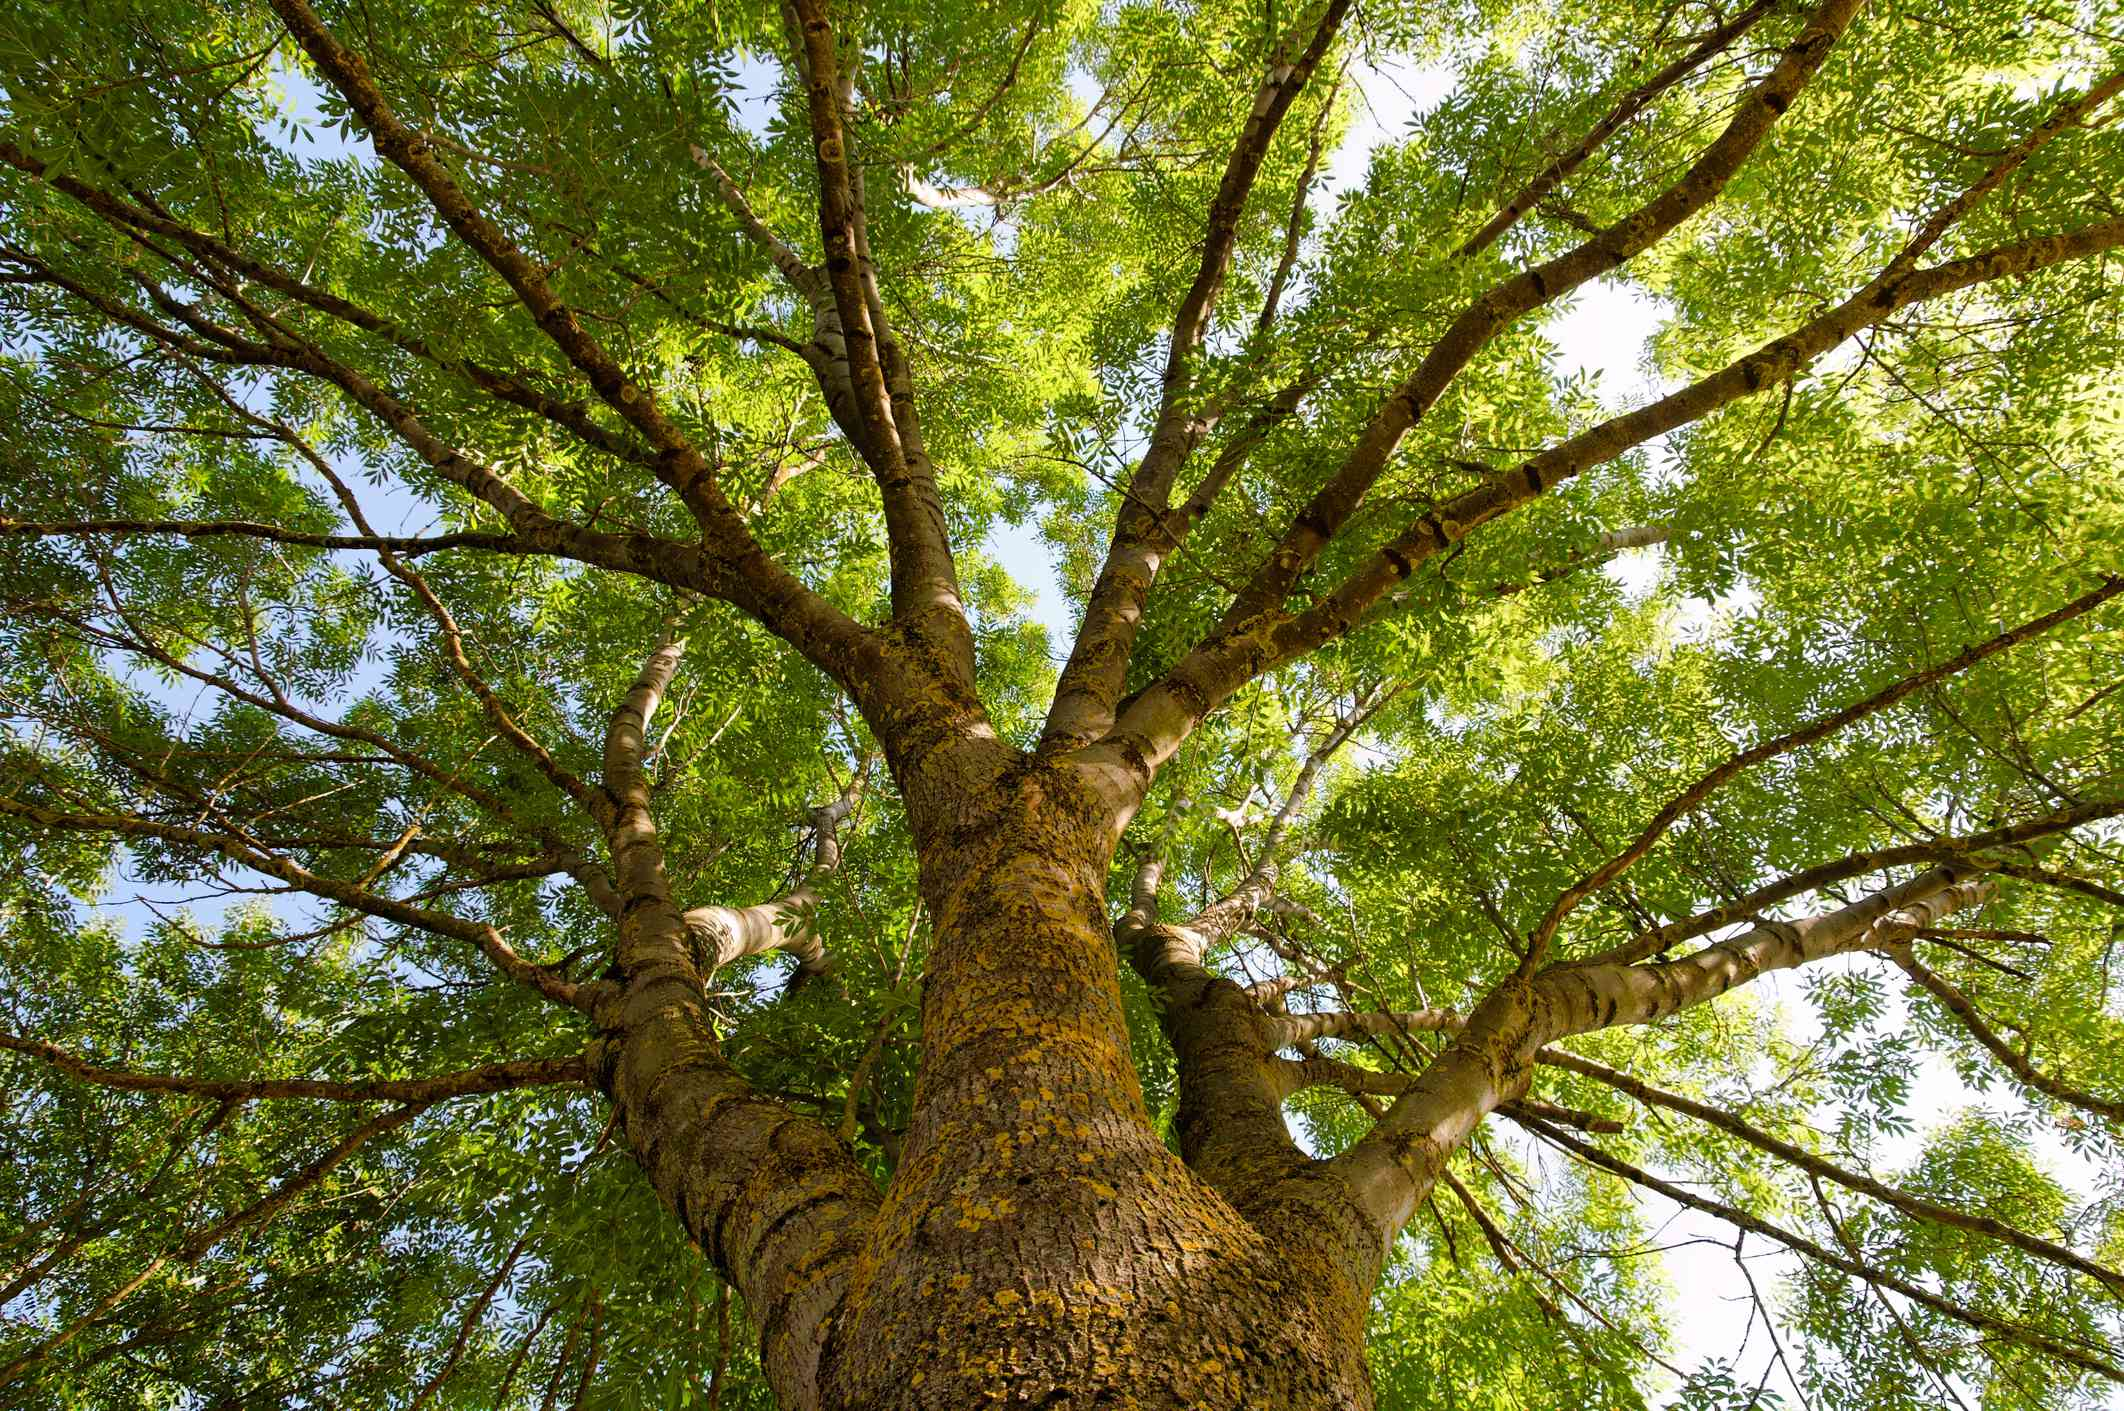 Fraxinus excelsior, more commonly known as the Ash tree